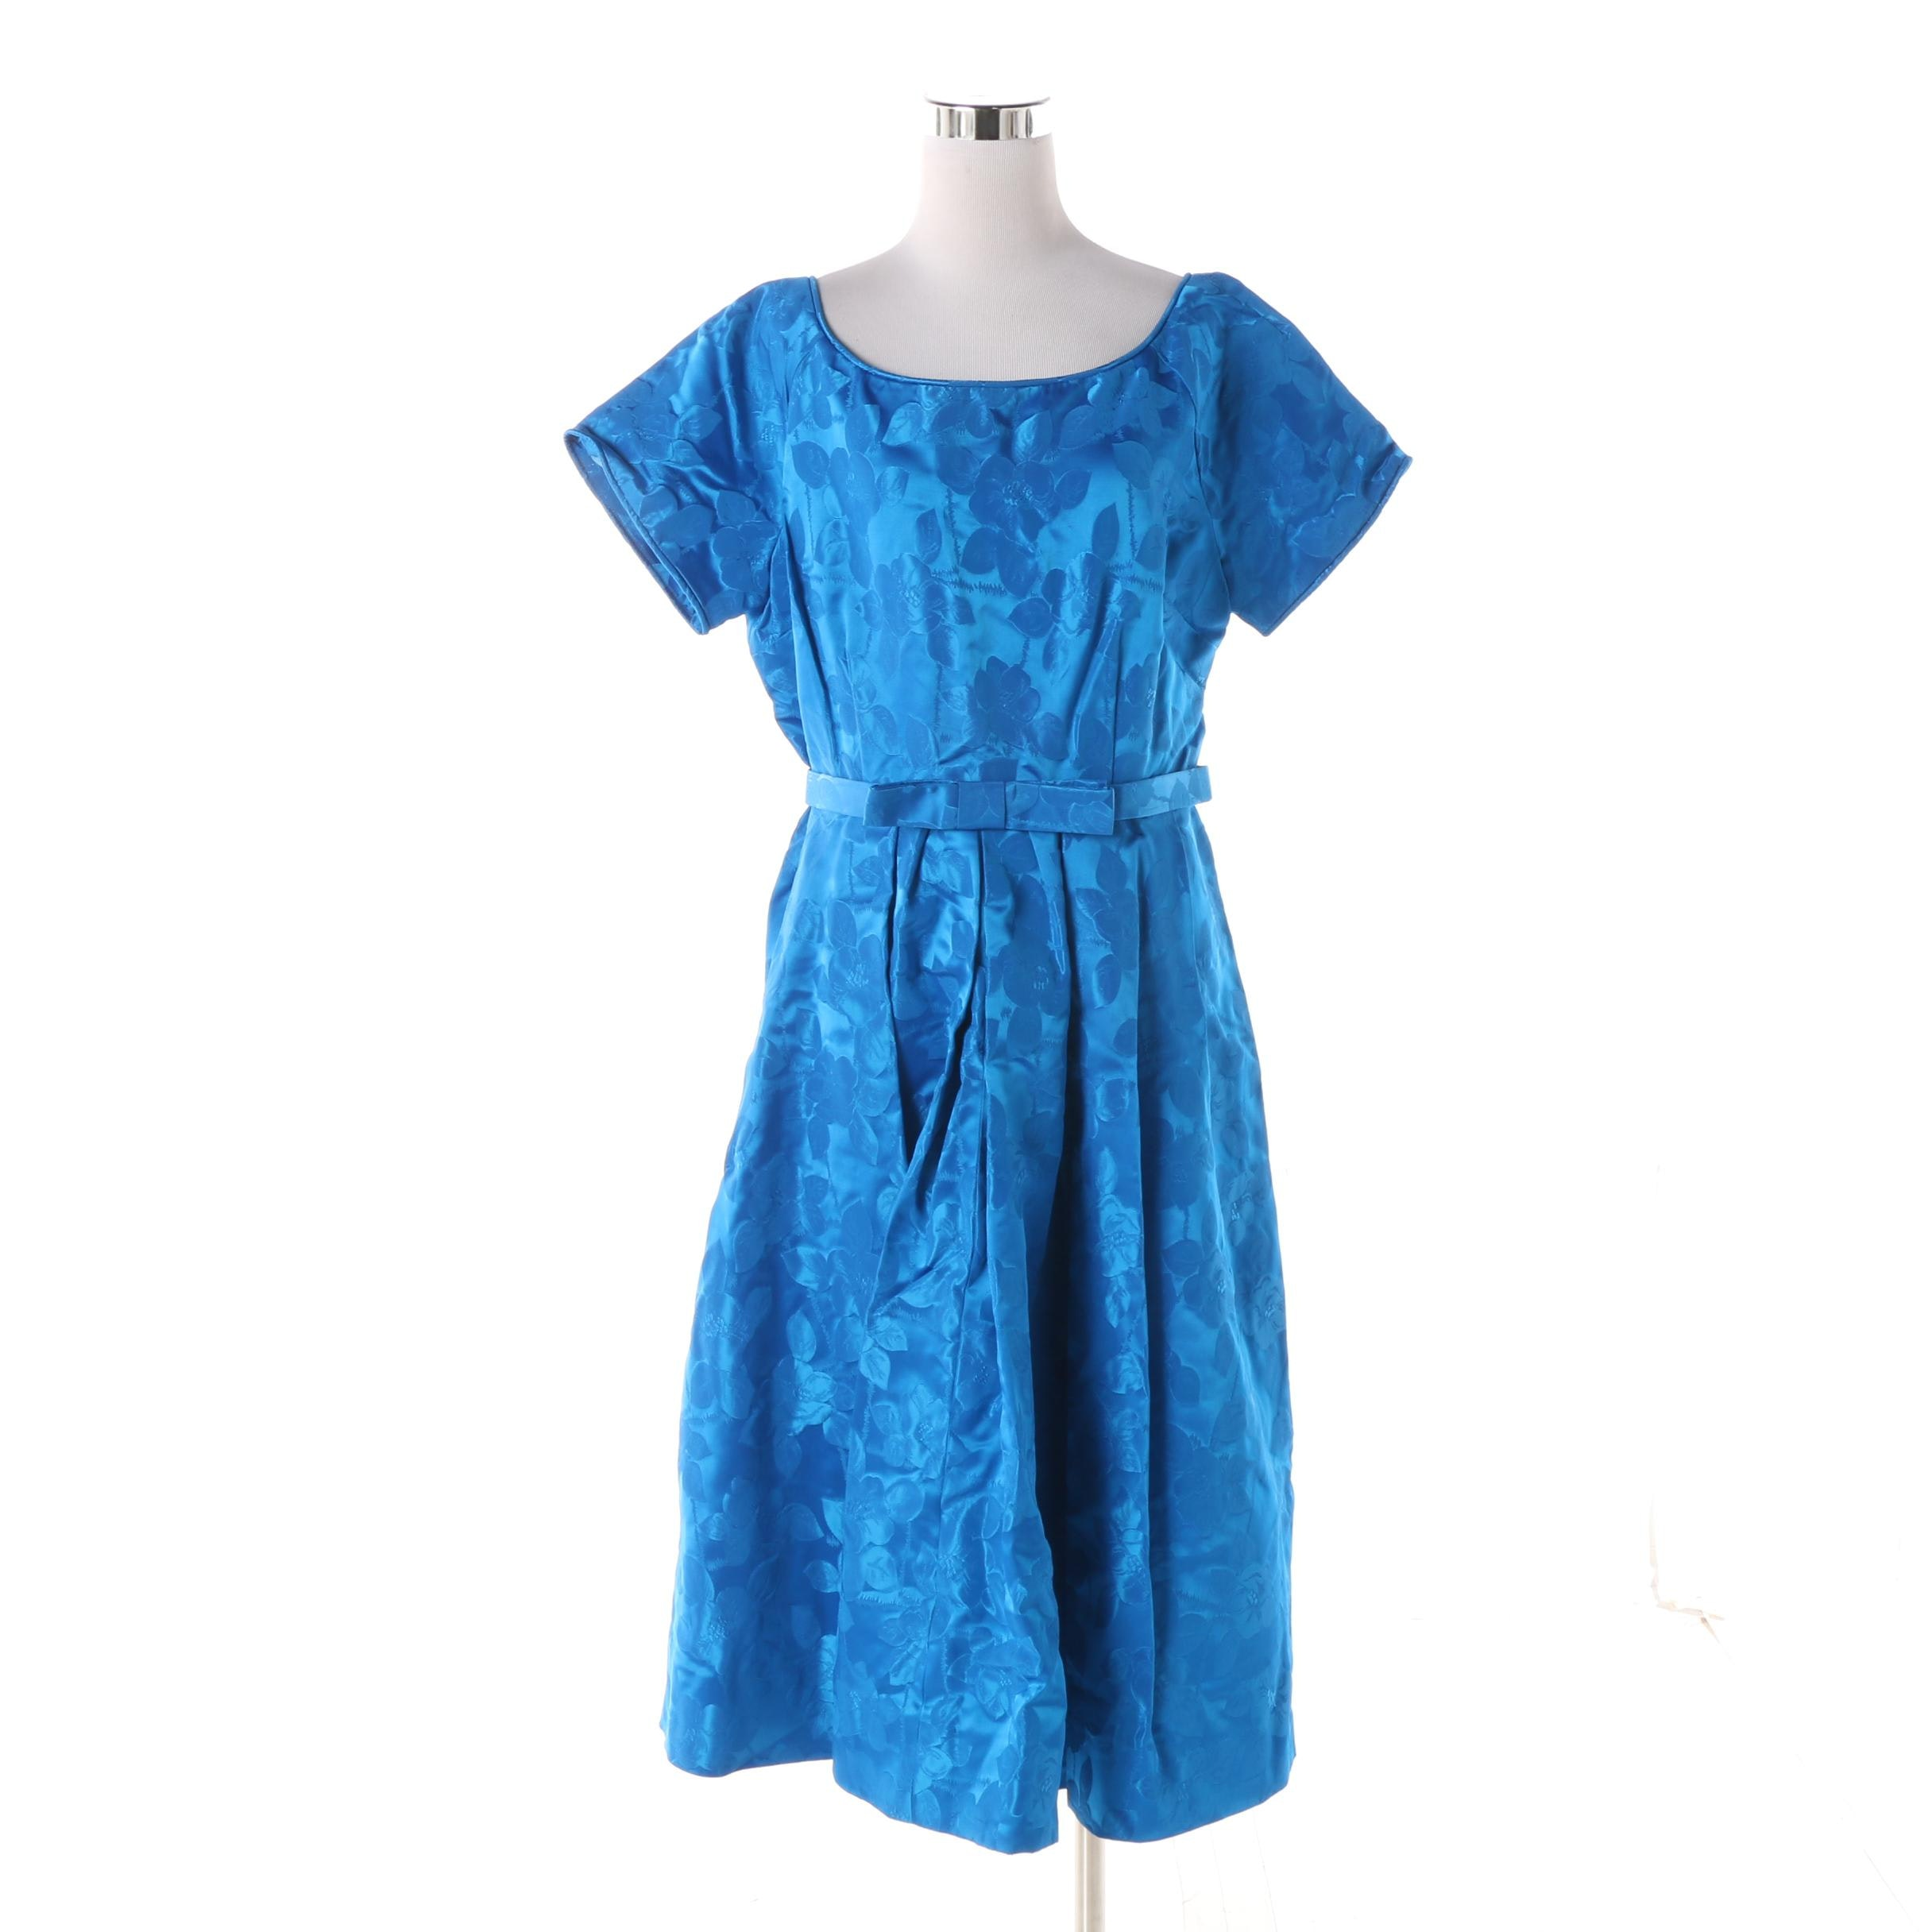 1950s Vintage Blue Floral Satin Brocade Occasion Dress